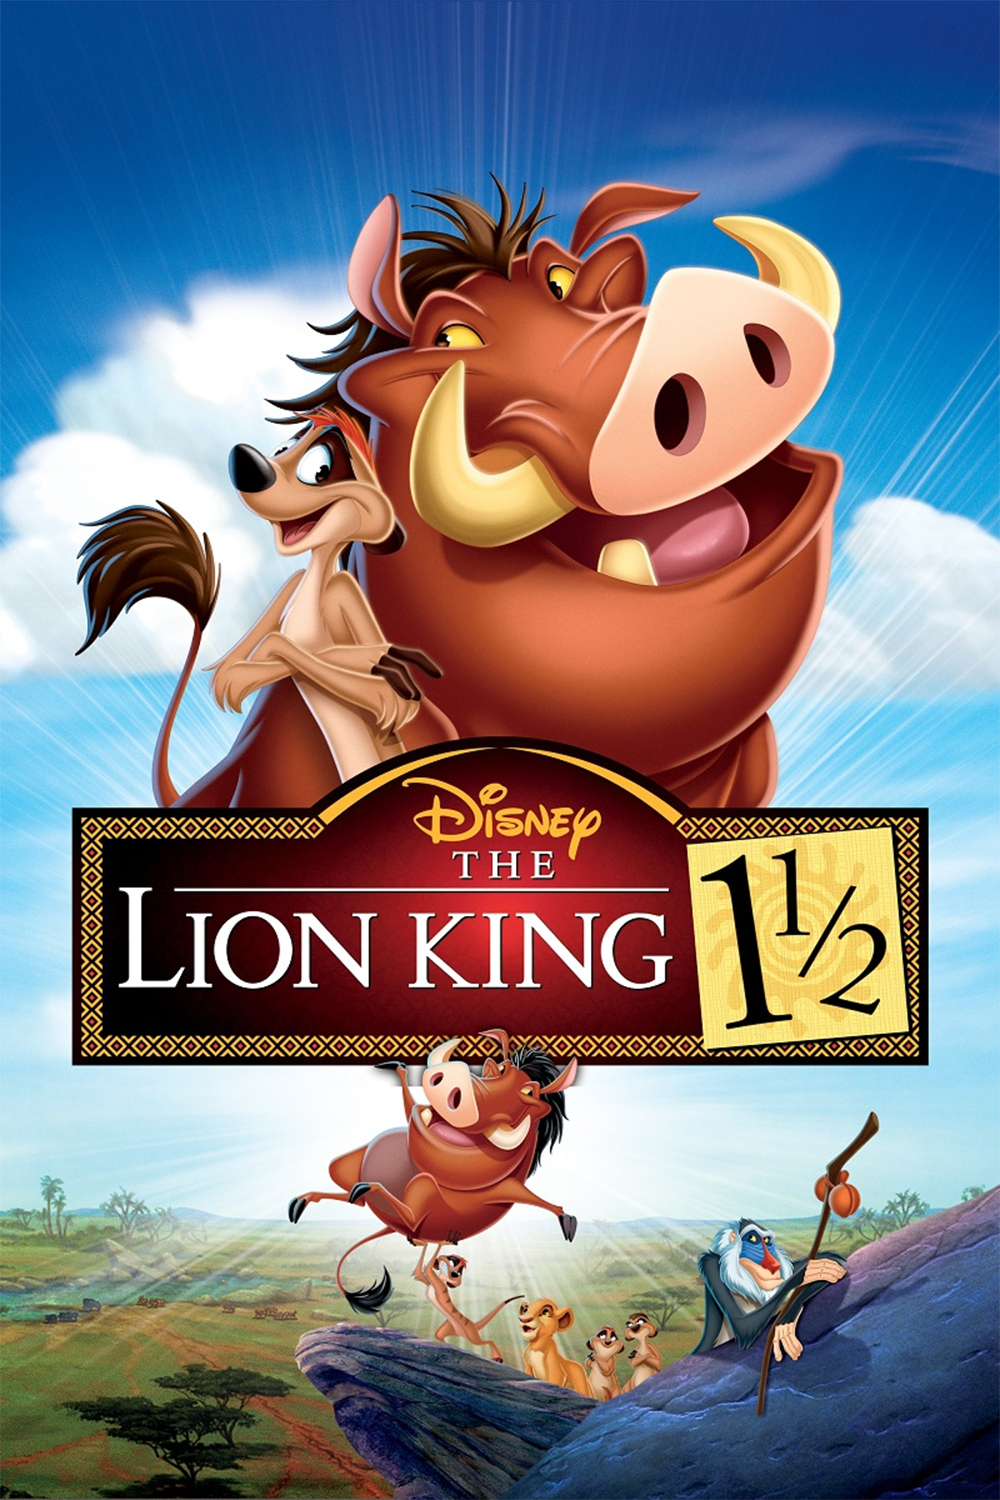 The Lion King 1 1/2 / The Lion King 1½